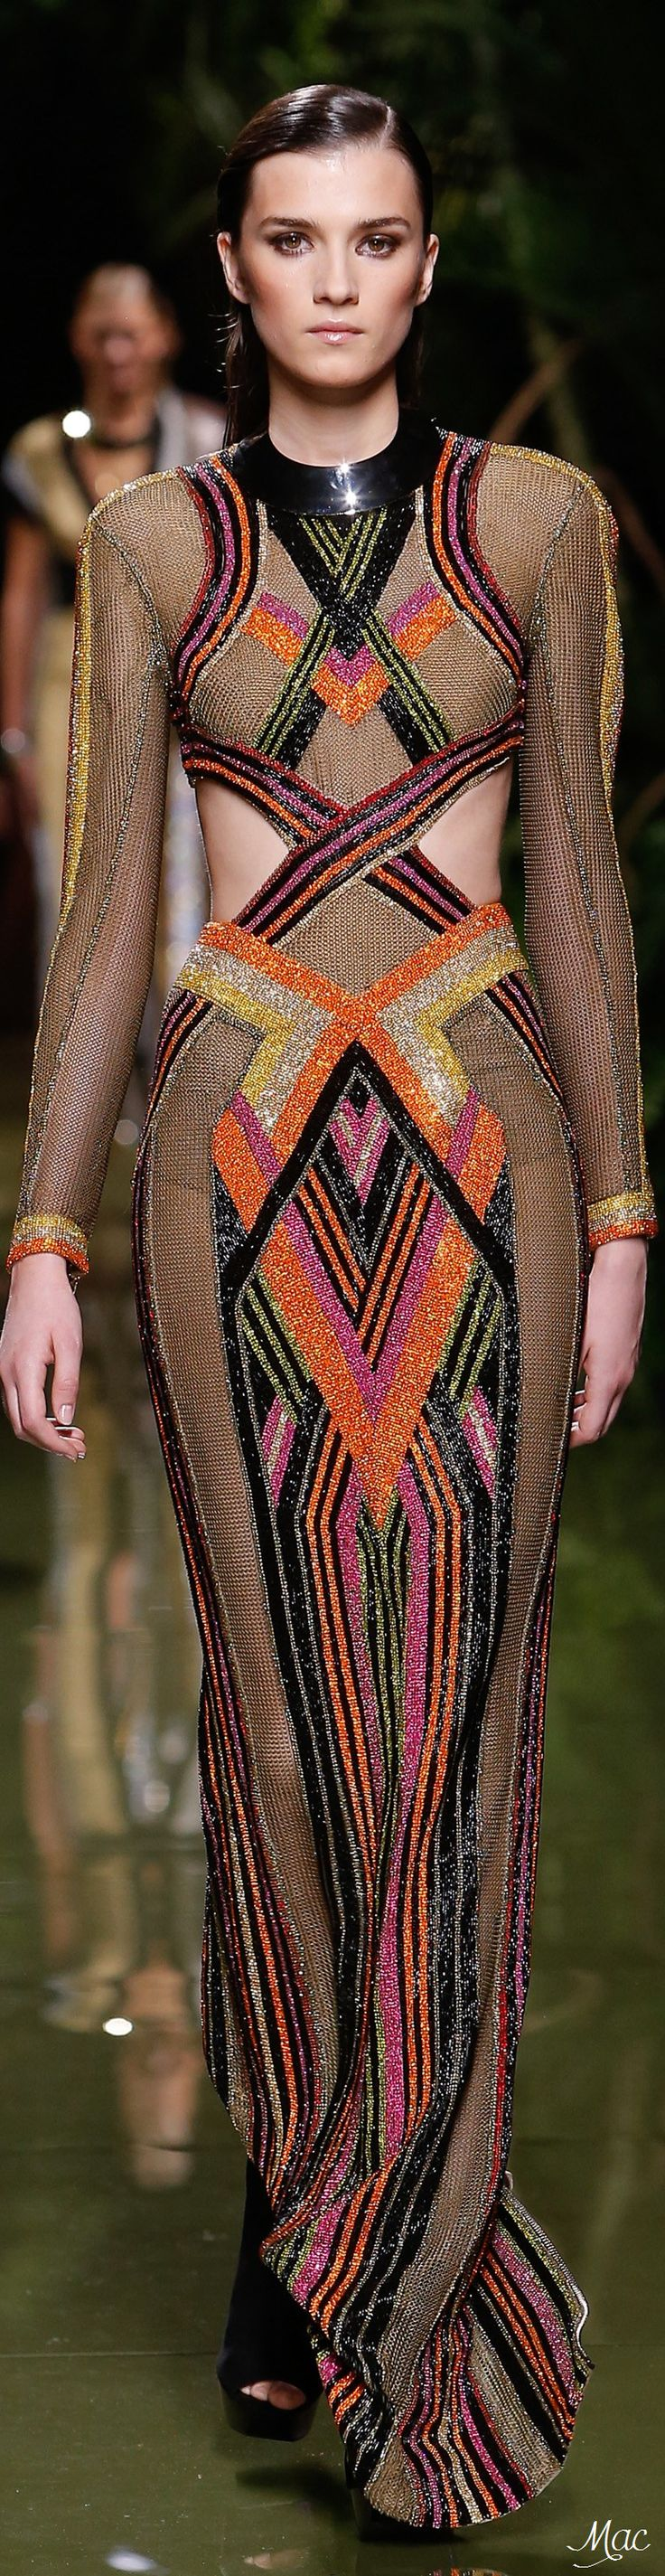 Spring 2017 Ready-to-Wear Balmain